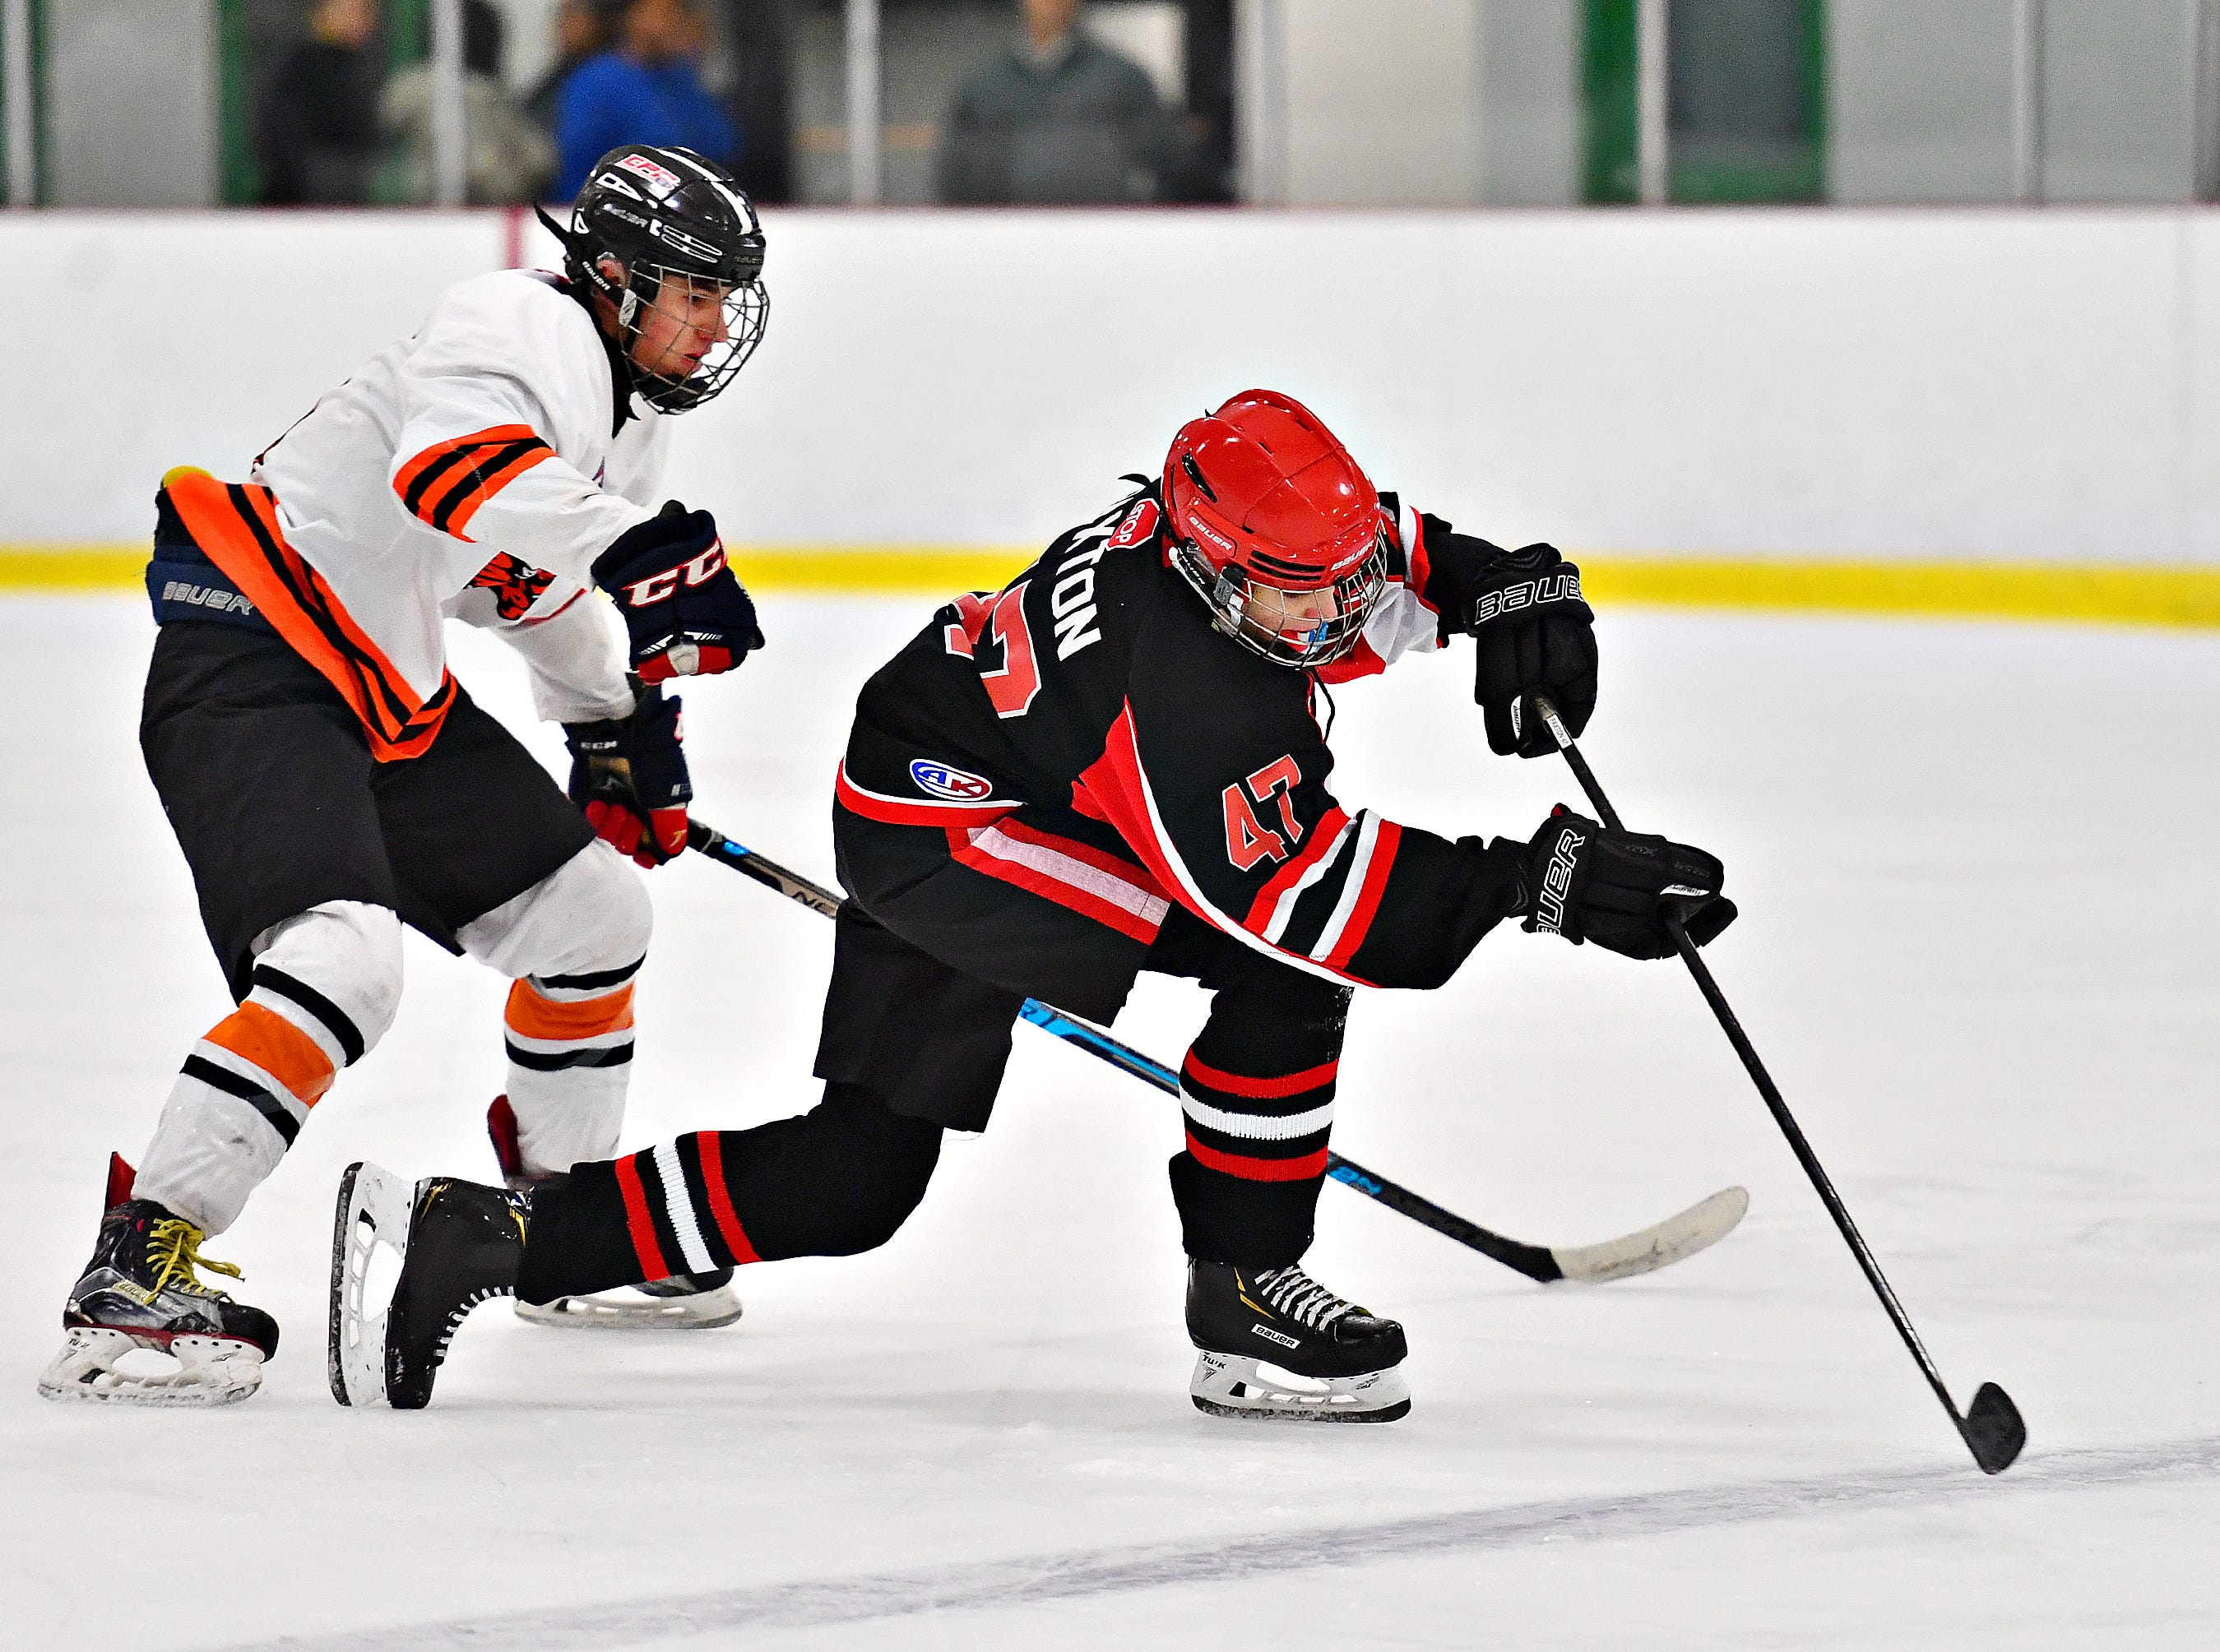 Cumberland Valley's Carson Paxton, right, controls the puck while Central York's Sean Barba defends during ice hockey action at York Ice Arena in York City, Wednesday, Dec. 5, 2018. Dawn J. Sagert photo